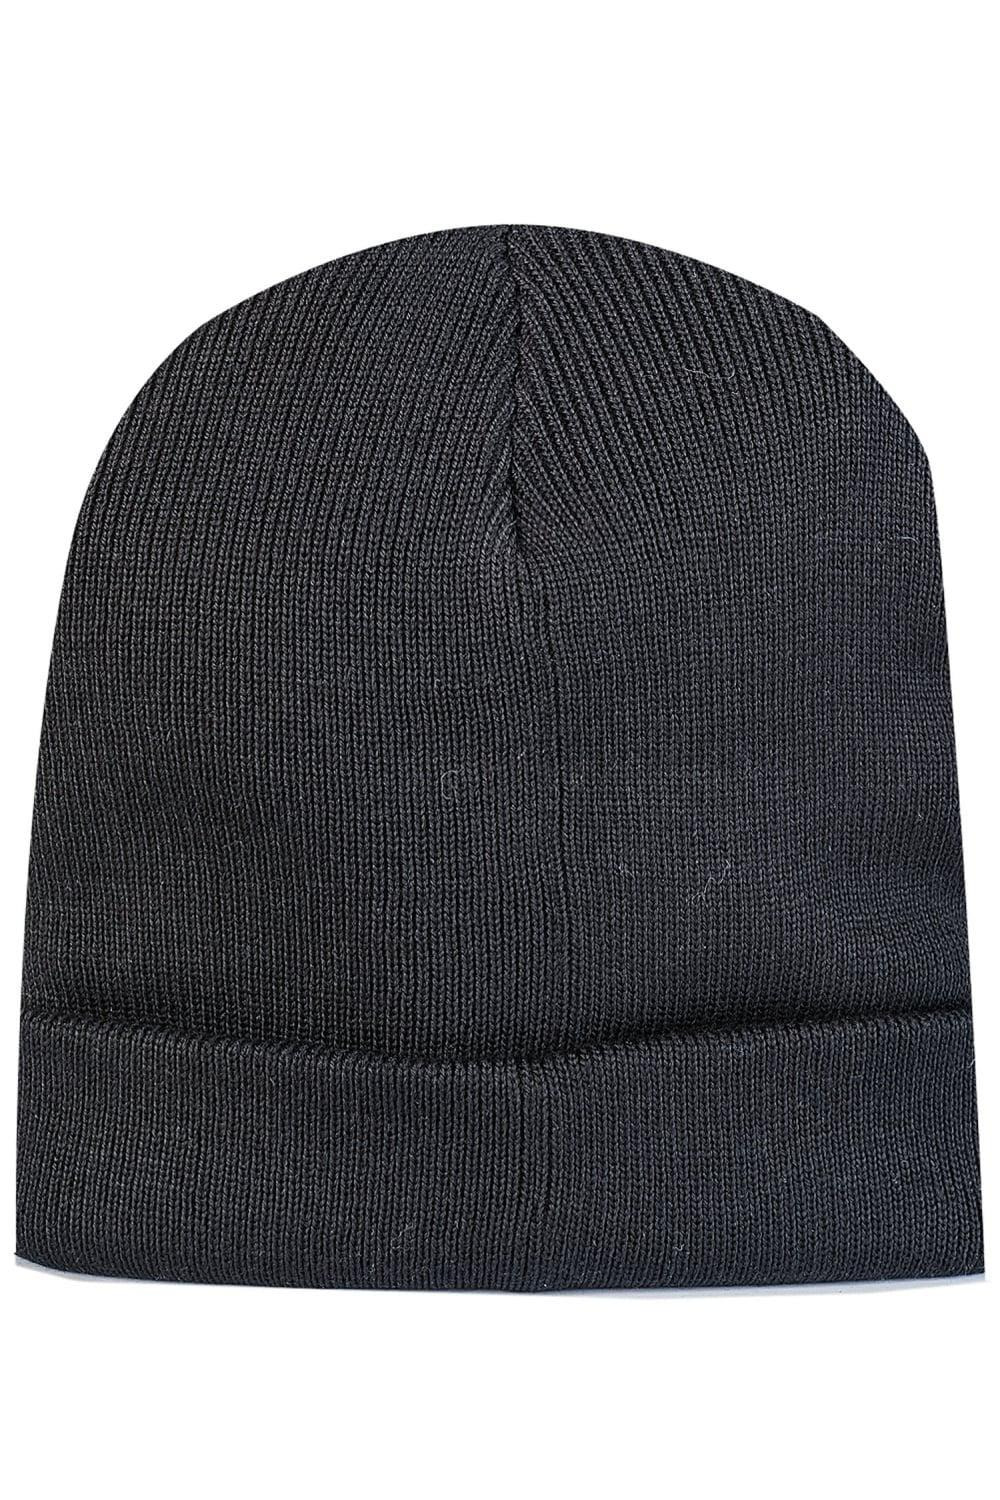 689526f8309 Givenchy Leather Patch Beanie Hat in Black for Men - Lyst